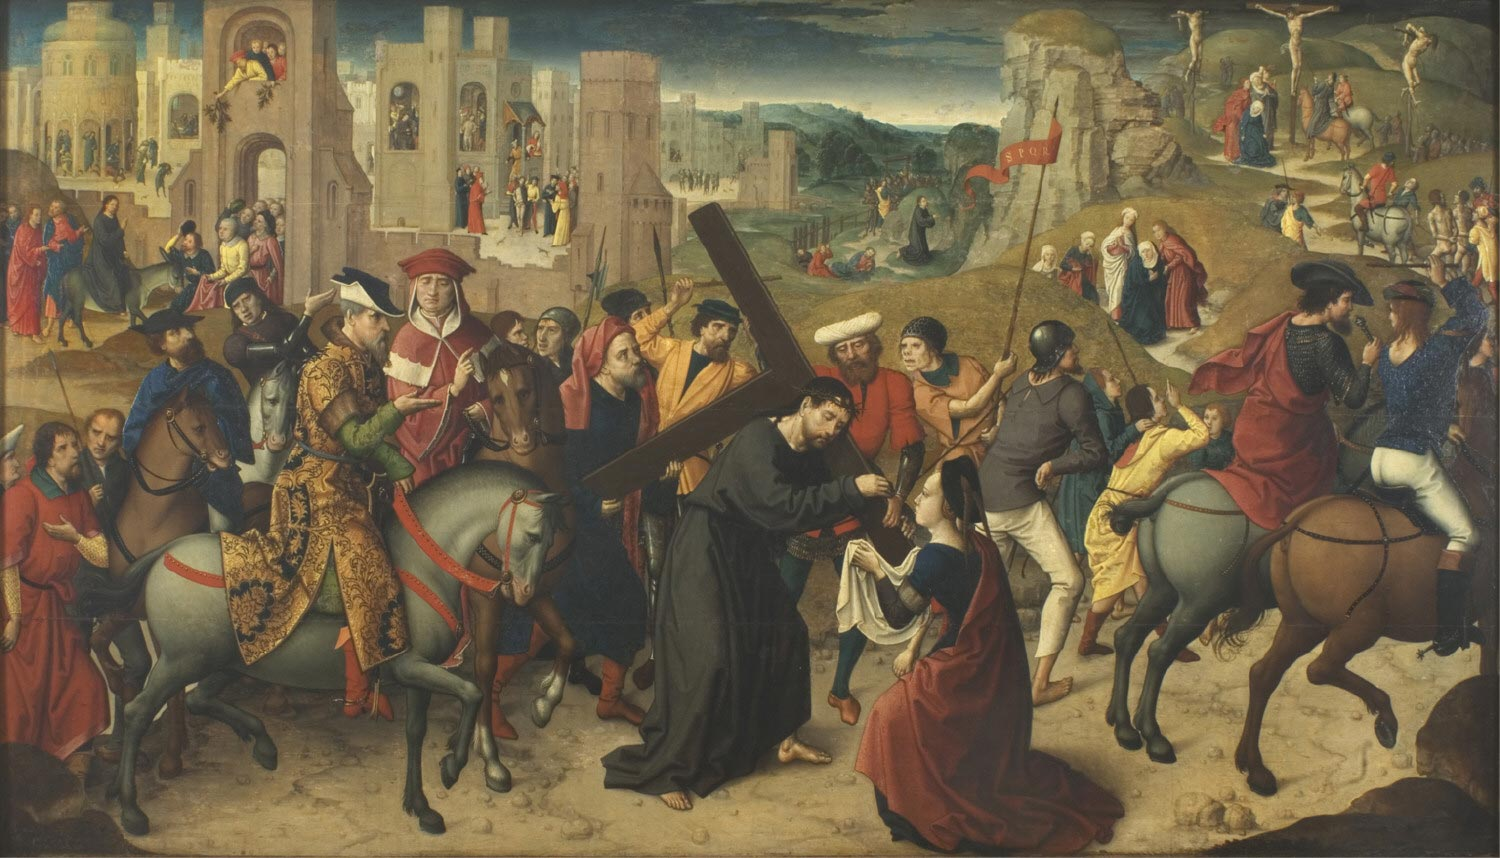 Christ Carrying the Cross, with the Entry of Christ into Jerusalem, Christ Driving the Moneychangers from the Temple, the Last Supper, Christ Crowned with Thorns, the Flagellation,